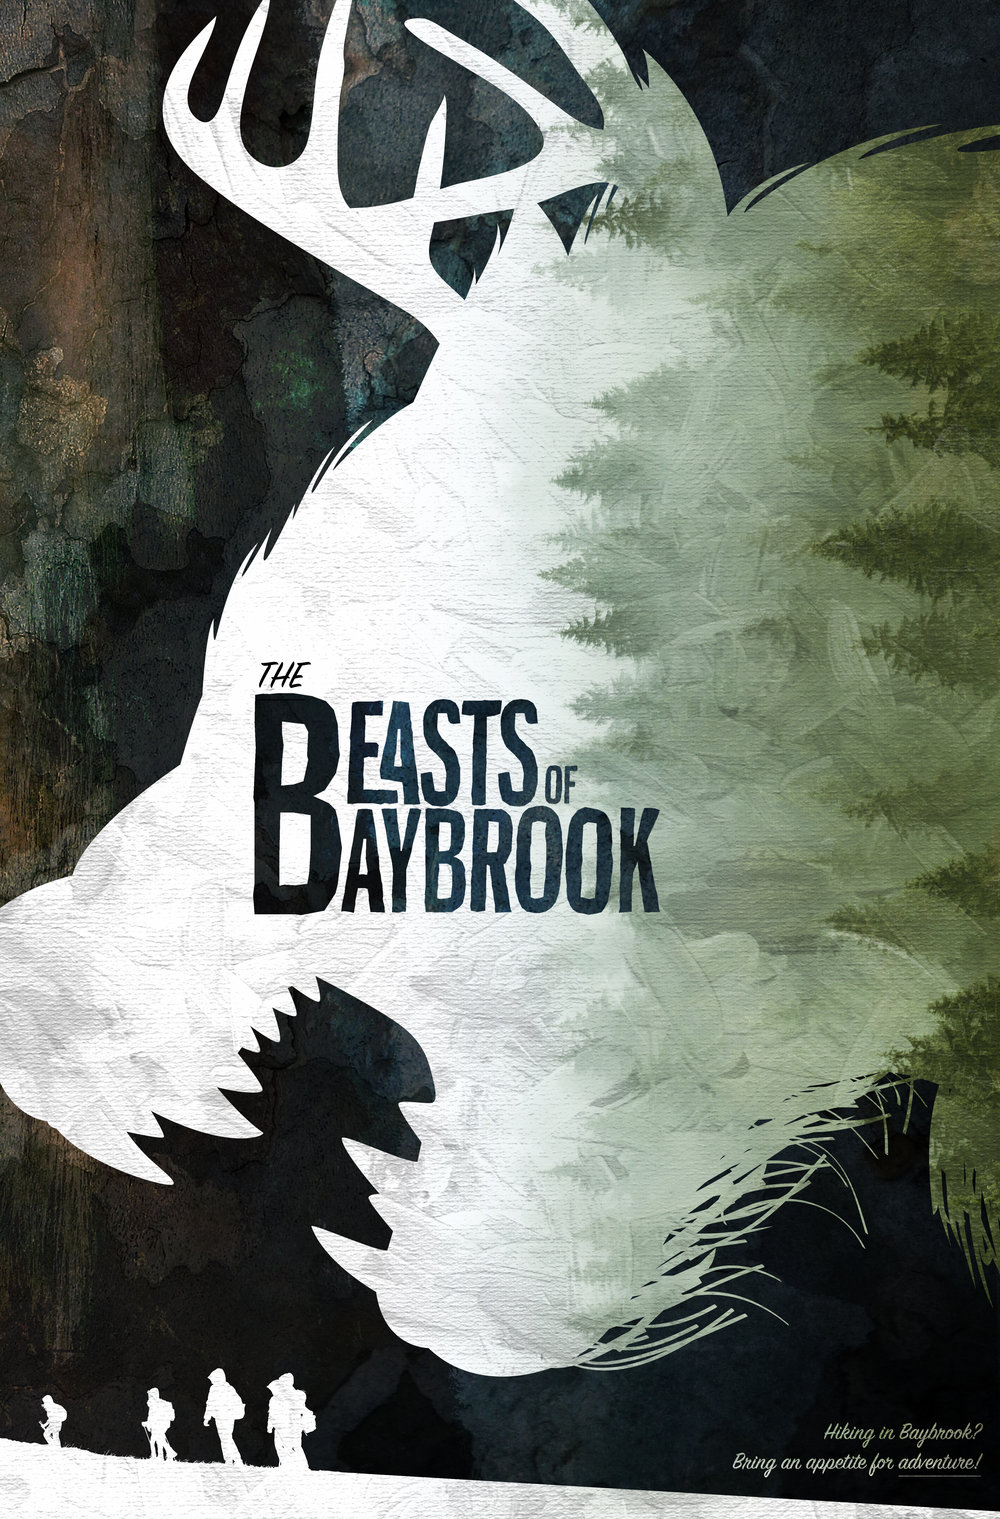 THE BEASTS OF BAYBROOK - FEATURE | ADVENTURE • HORRORLOGLINE: Shortly after moving to the sleepy town of Baybrook, Oregon, the Tambe family — on the brink of divorce — is rocked by trauma when their father and eldest son are attacked by the mysterious BEAST OF BAYBROOK; a rhino sized bear with antlers and a penchant for blood that was thought to be pure legend. In hopes of saving her brother and father, the curious new-kid in town TEAL TAMBE must put aside her troubled relationship with her mother and journey into the wilderness to slay the beast.